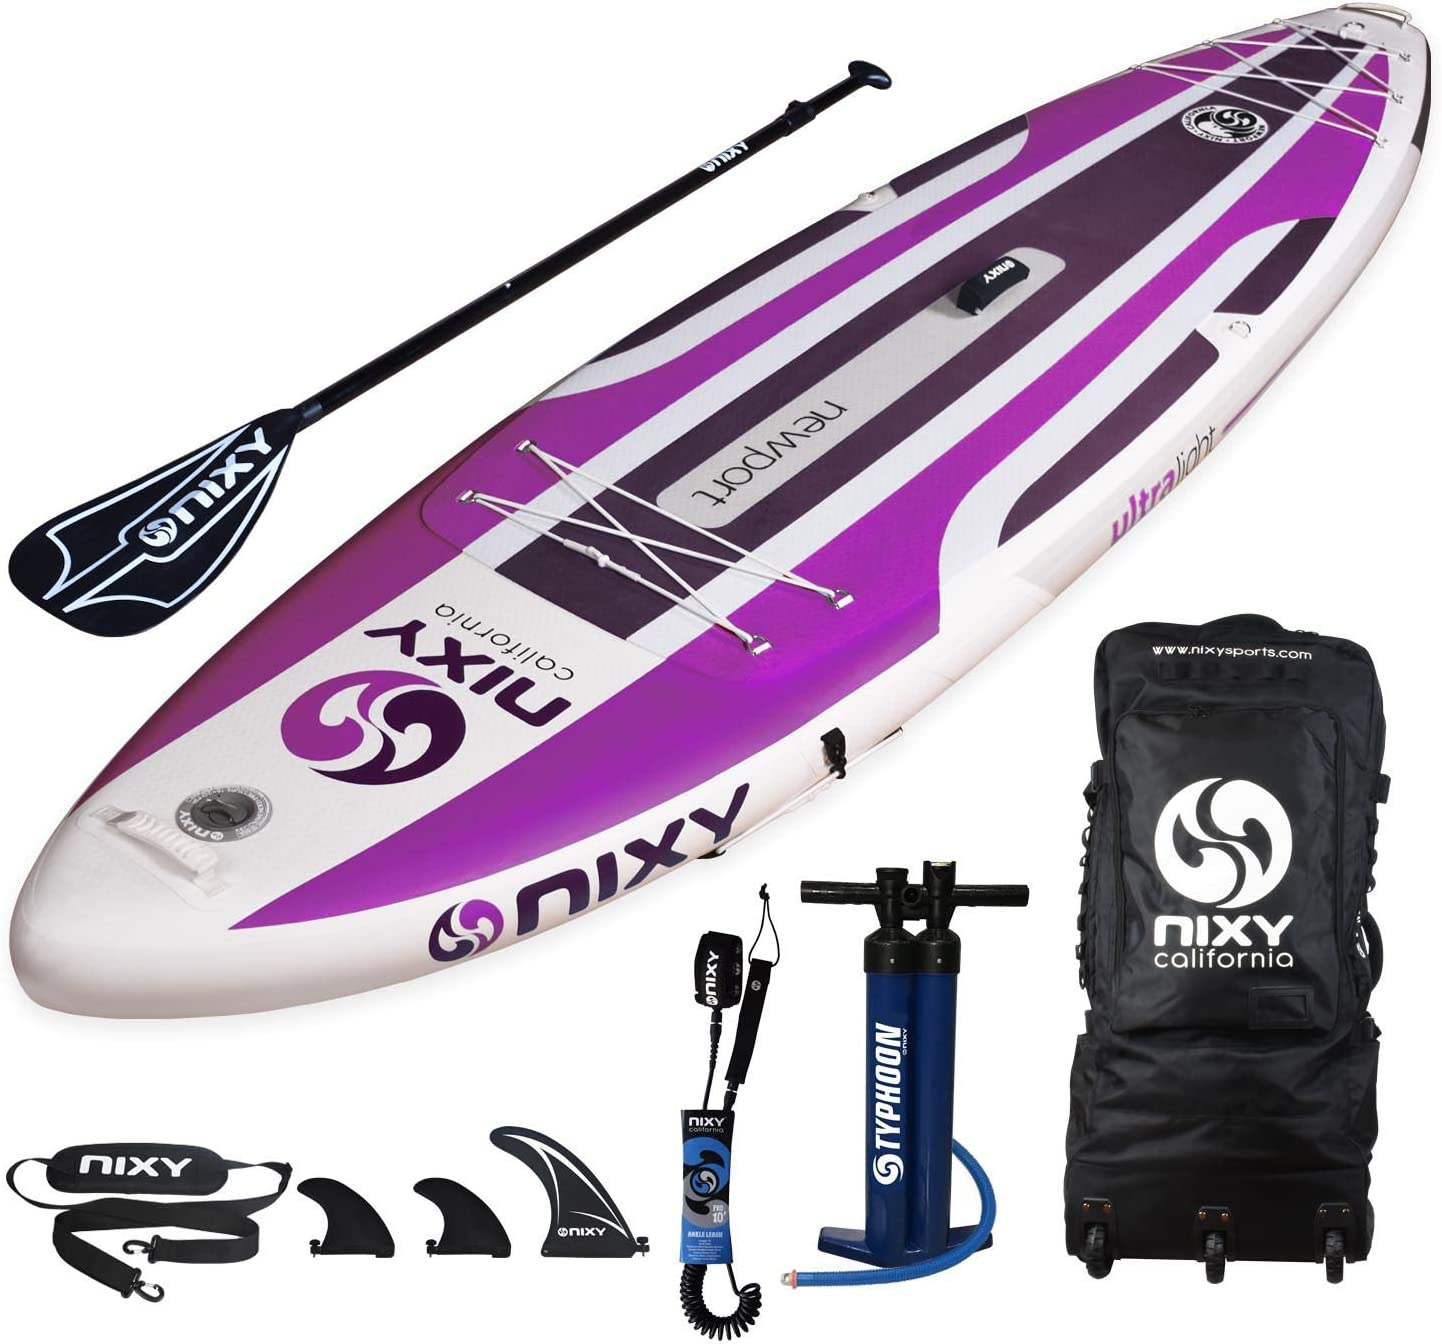 NIXY Newport Inflatable Stand Up Paddle Board. All Around Lightweight Premium SUP built with the Latest Dropstitch Technology. All Accessories included Paddle, Leash, Pump, Shoulder Strap, Carry Bag